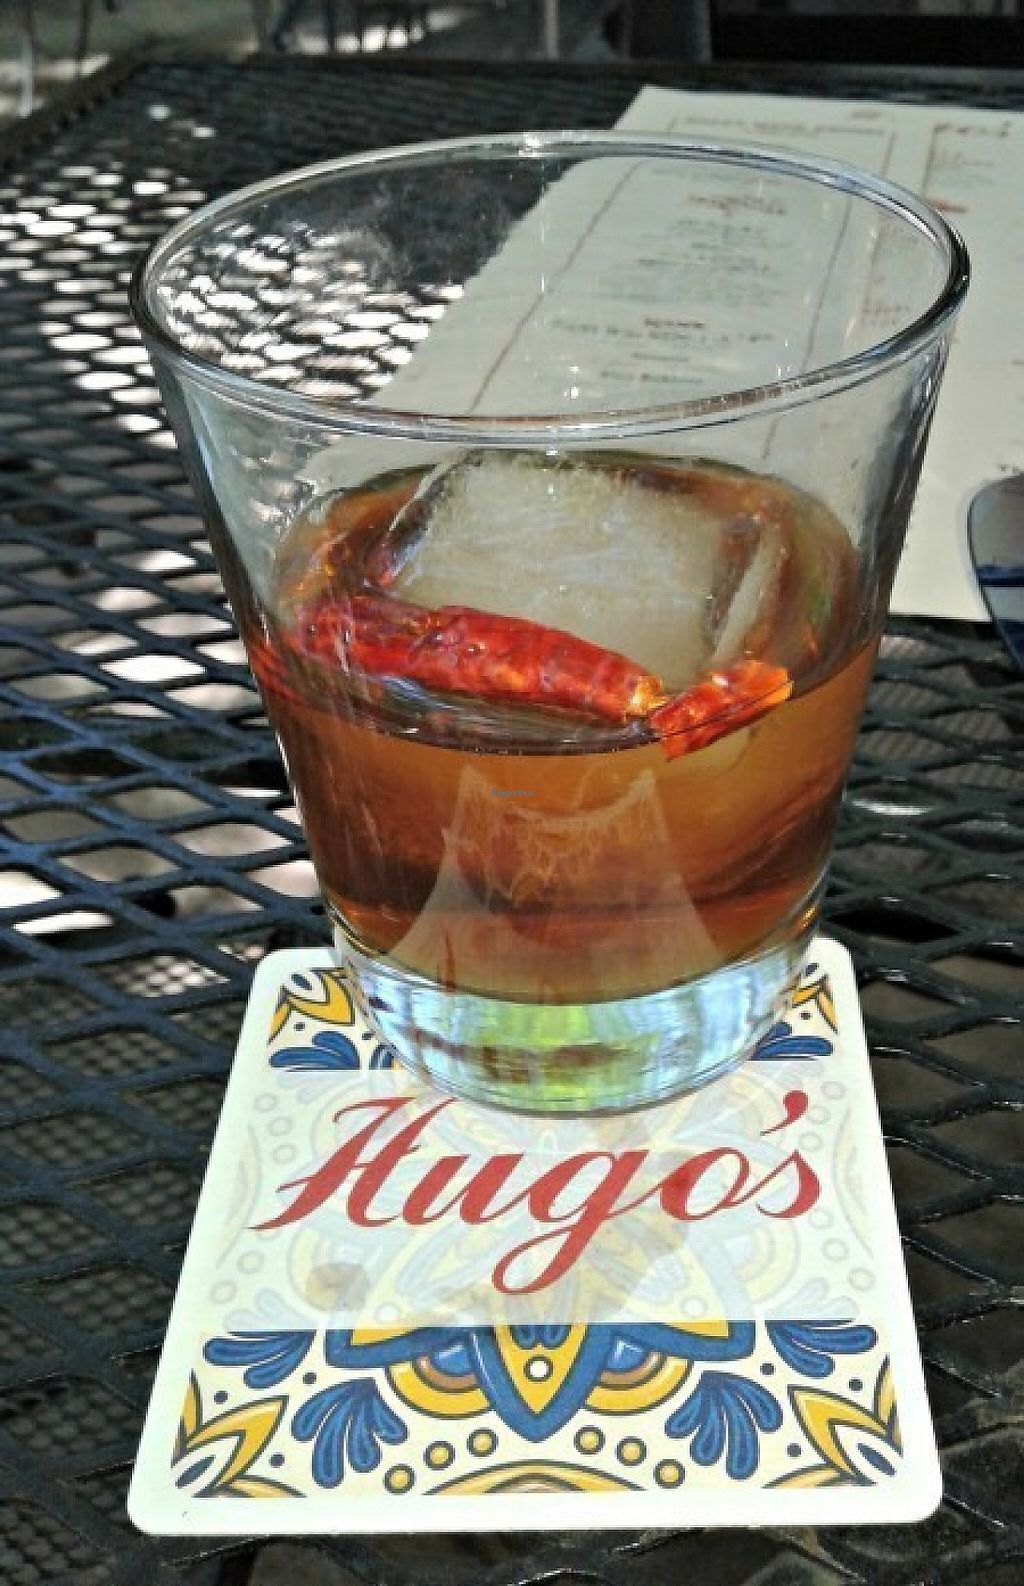 """Photo of Hugo's  by <a href=""""/members/profile/carnivoresandvegans"""">carnivoresandvegans</a> <br/>West Texas Walkabout Cocktail on Happy Hour - Get it!!! <br/> May 14, 2017  - <a href='/contact/abuse/image/37283/258662'>Report</a>"""